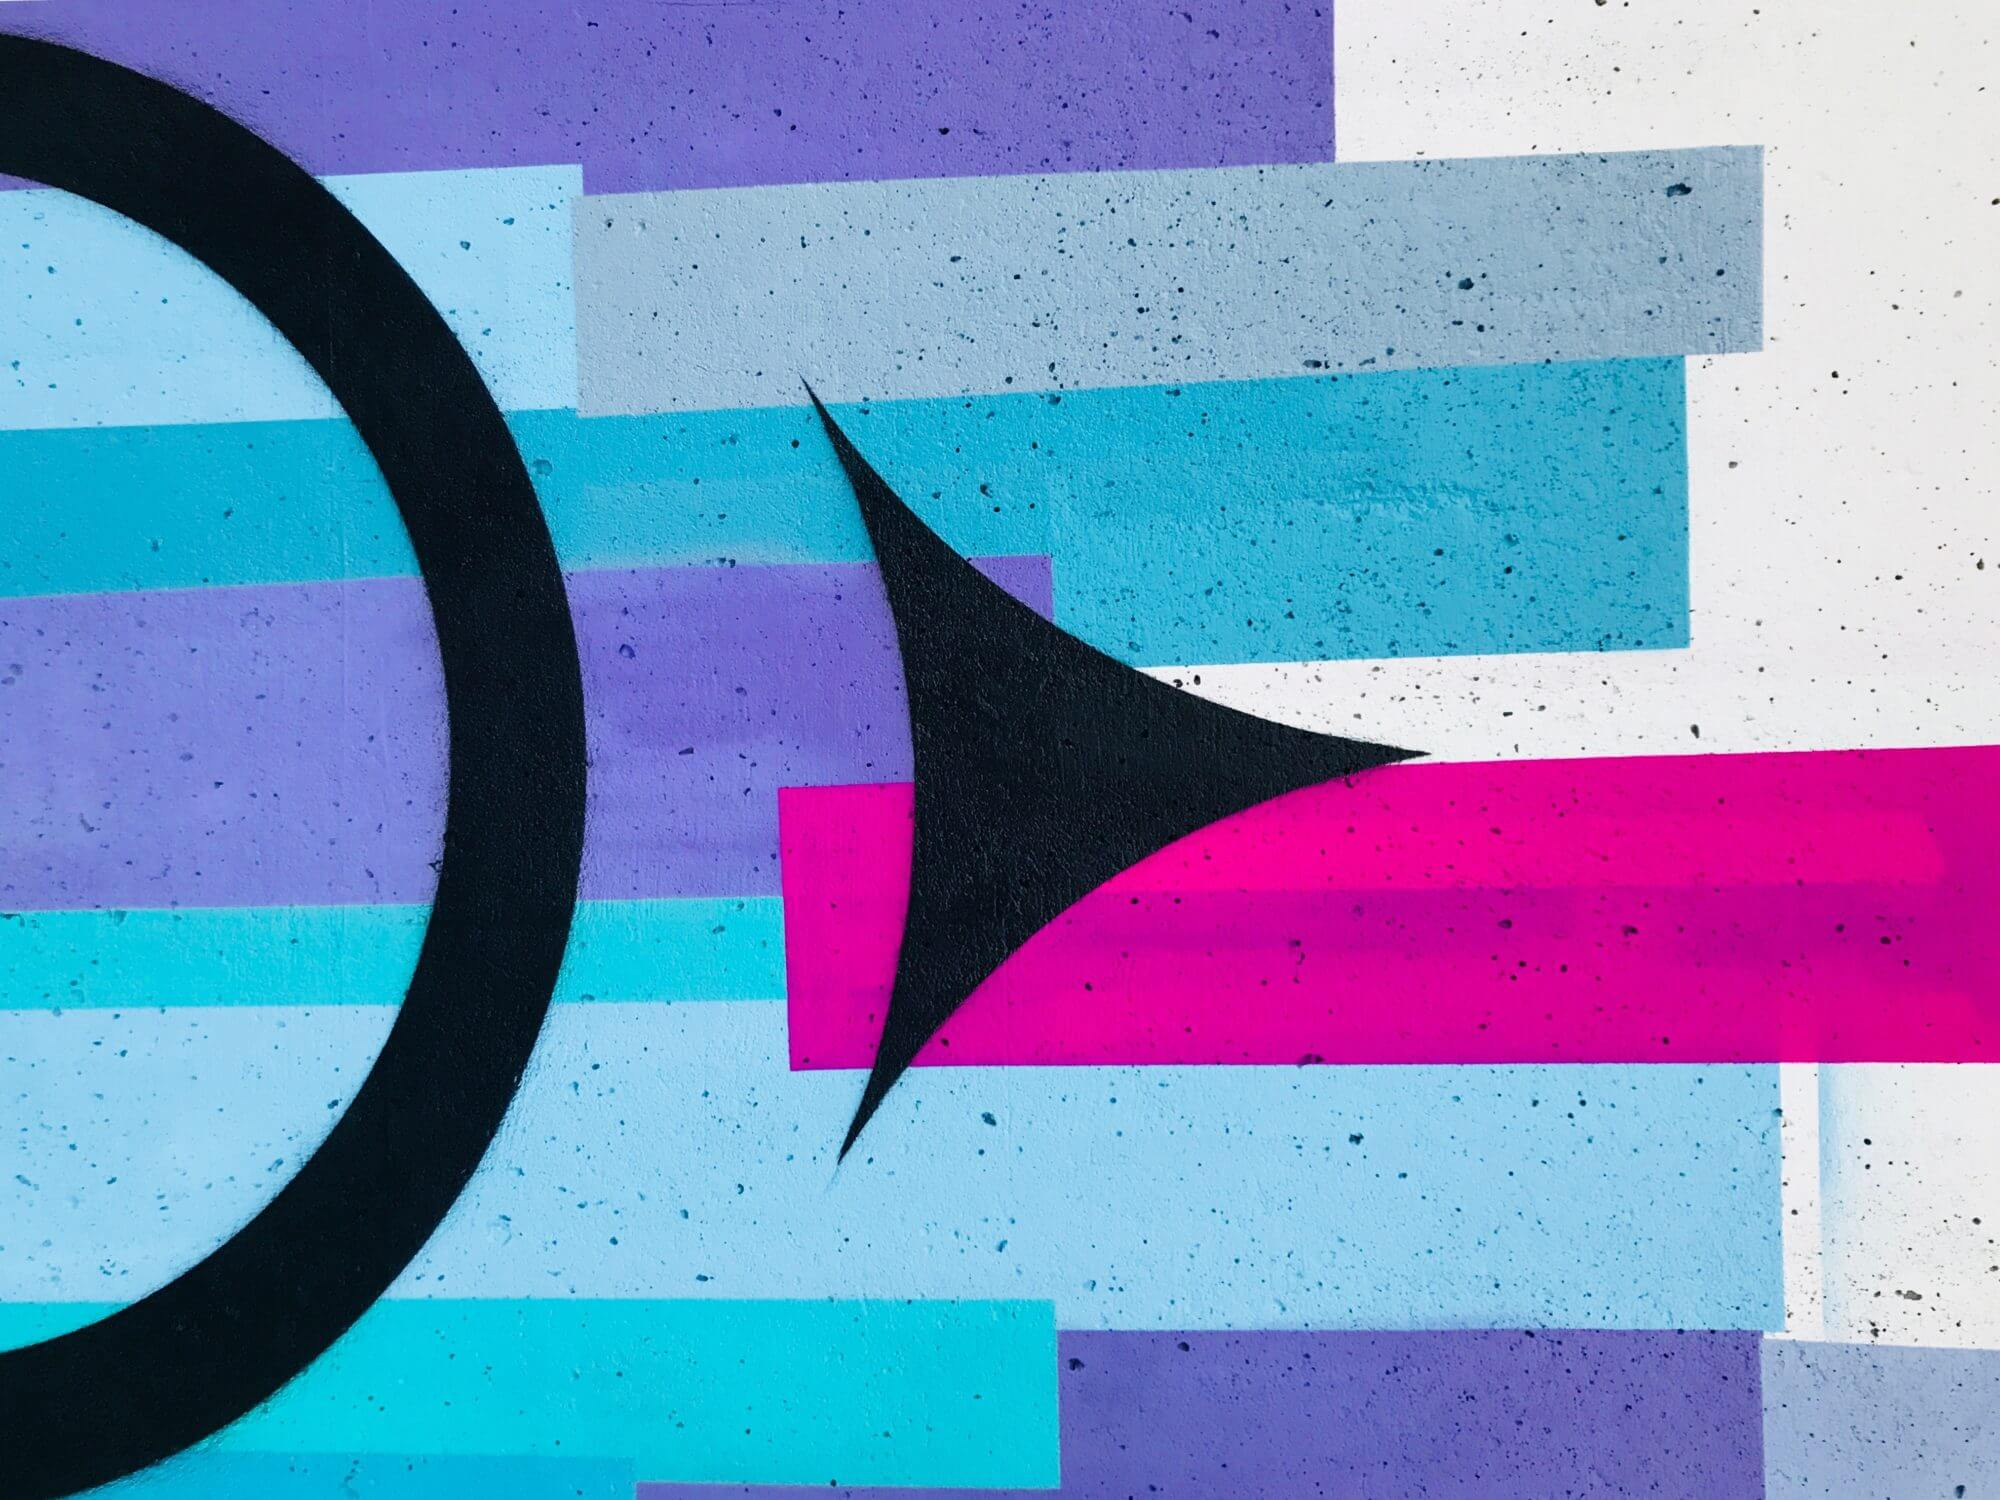 black arrow on abstract background